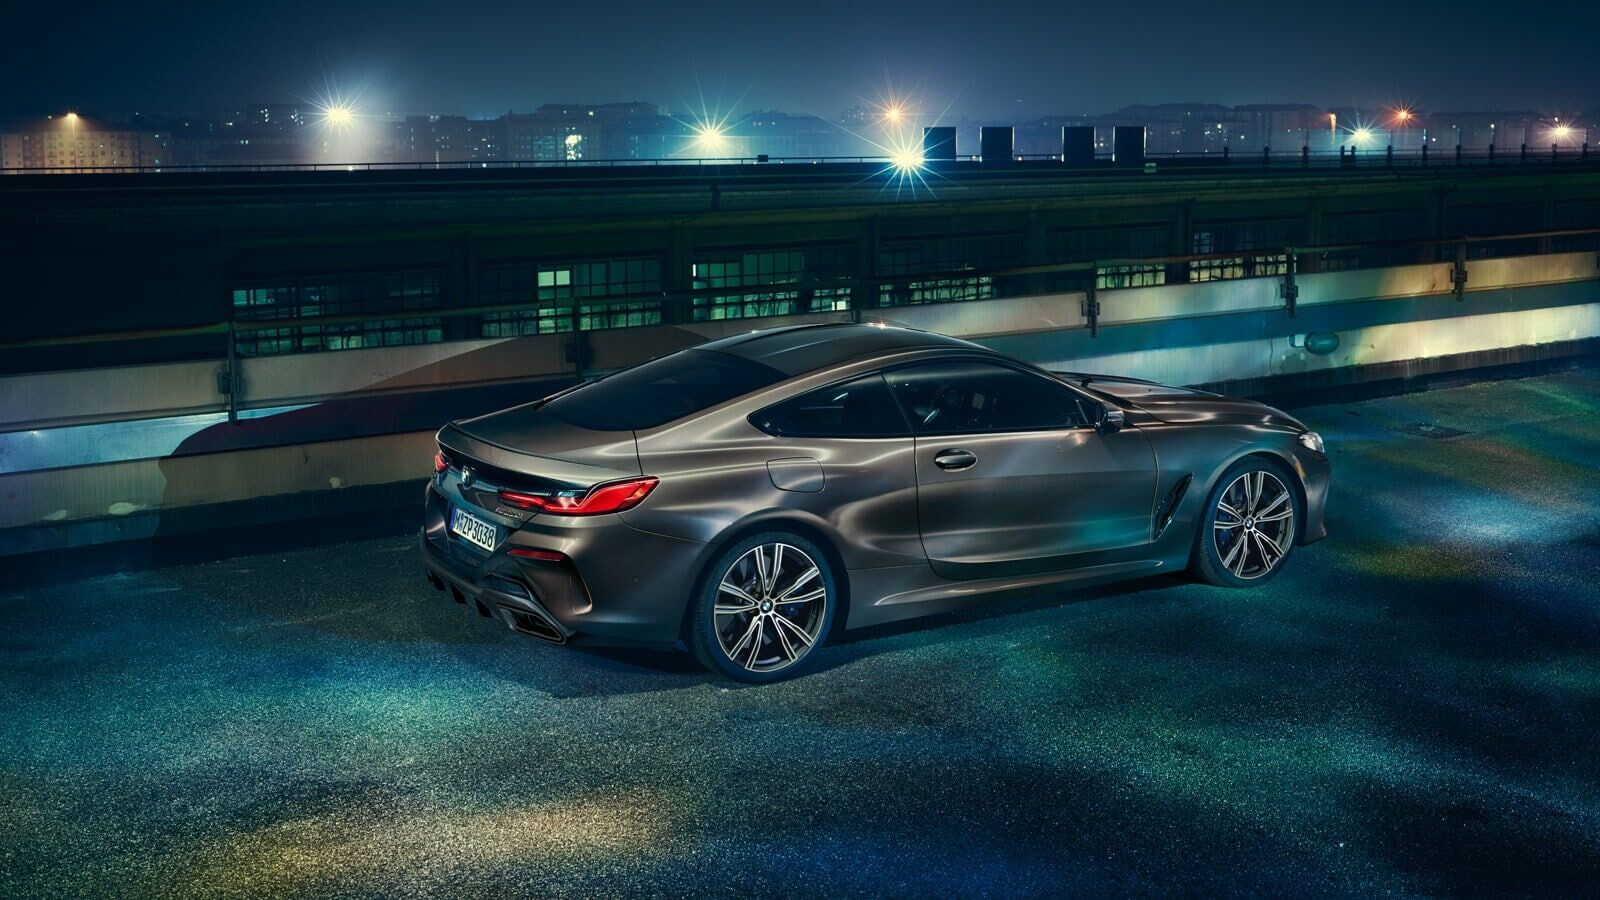 2020 Bmw 8 Series For Sale In Arden Nc As Your Trusted Bmw Car Dealership In The Asheville Area You Can Turn To Us For Bmw Car Dealership Bmw Car Dealership